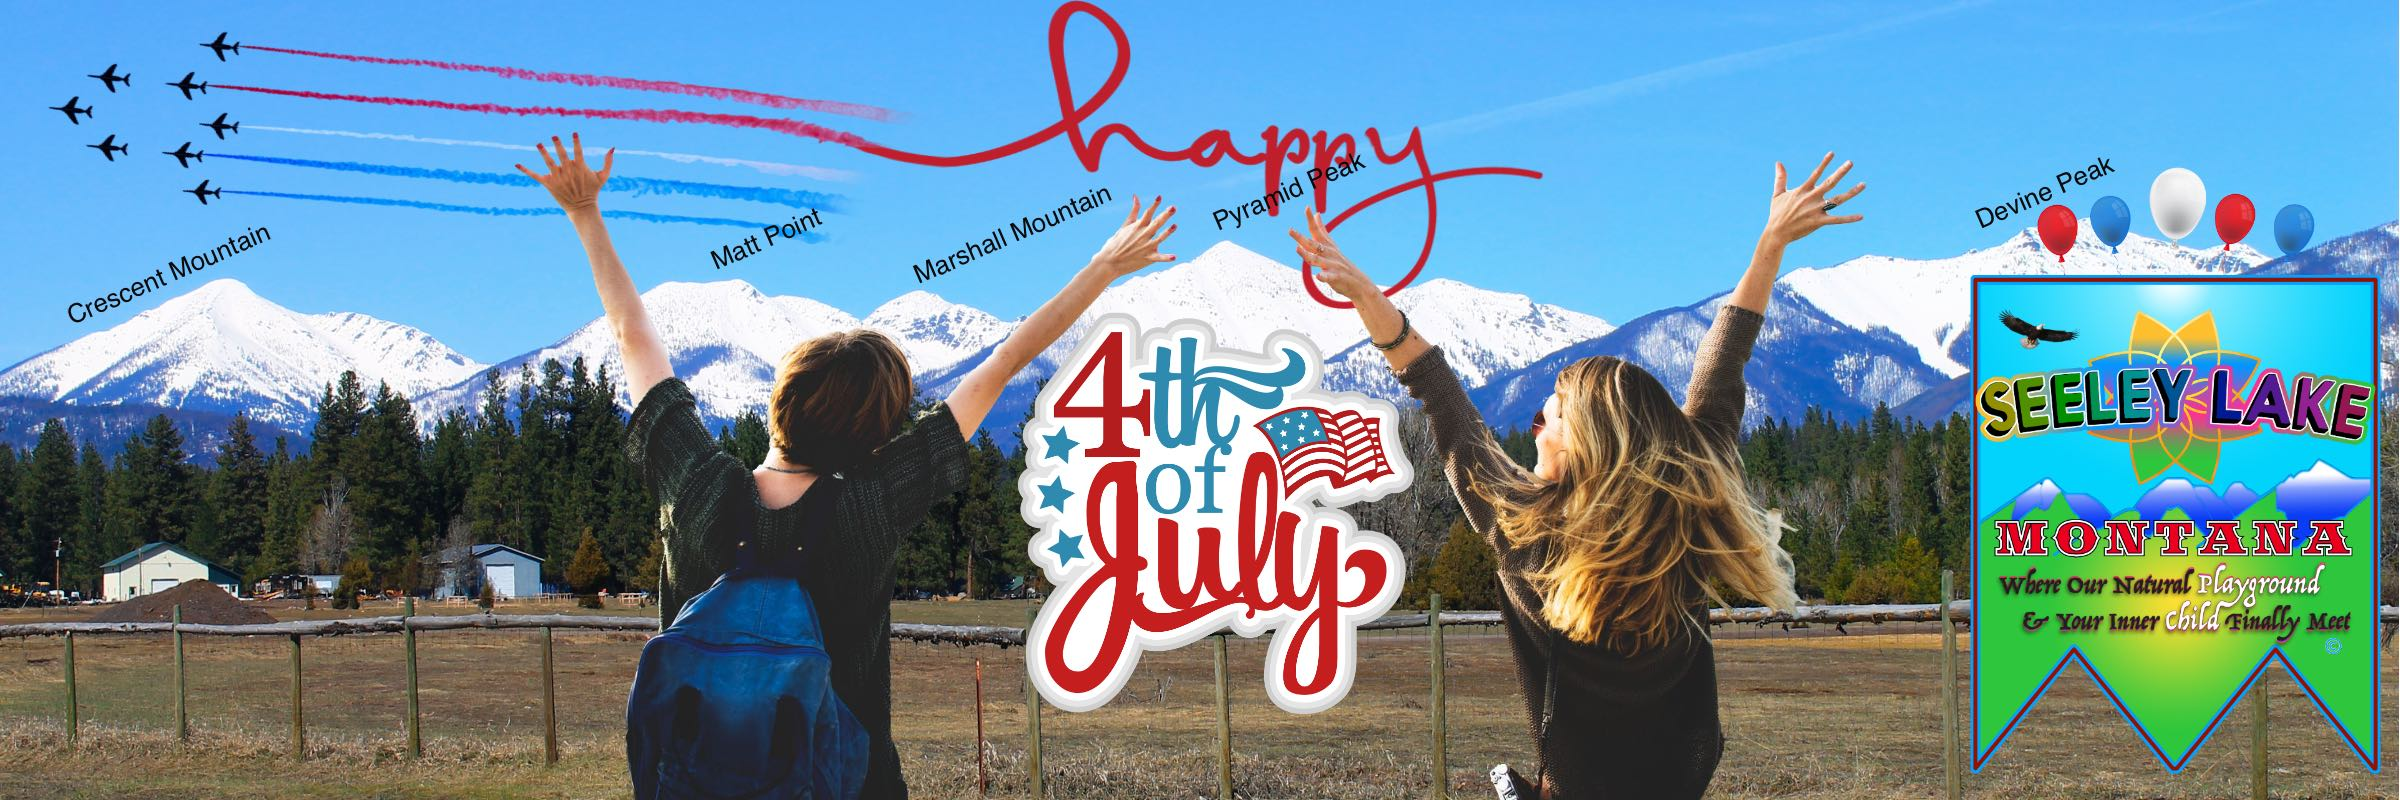 Seeley Lake Montana 2019 4th of July Parade | Happy 4th of July 2019